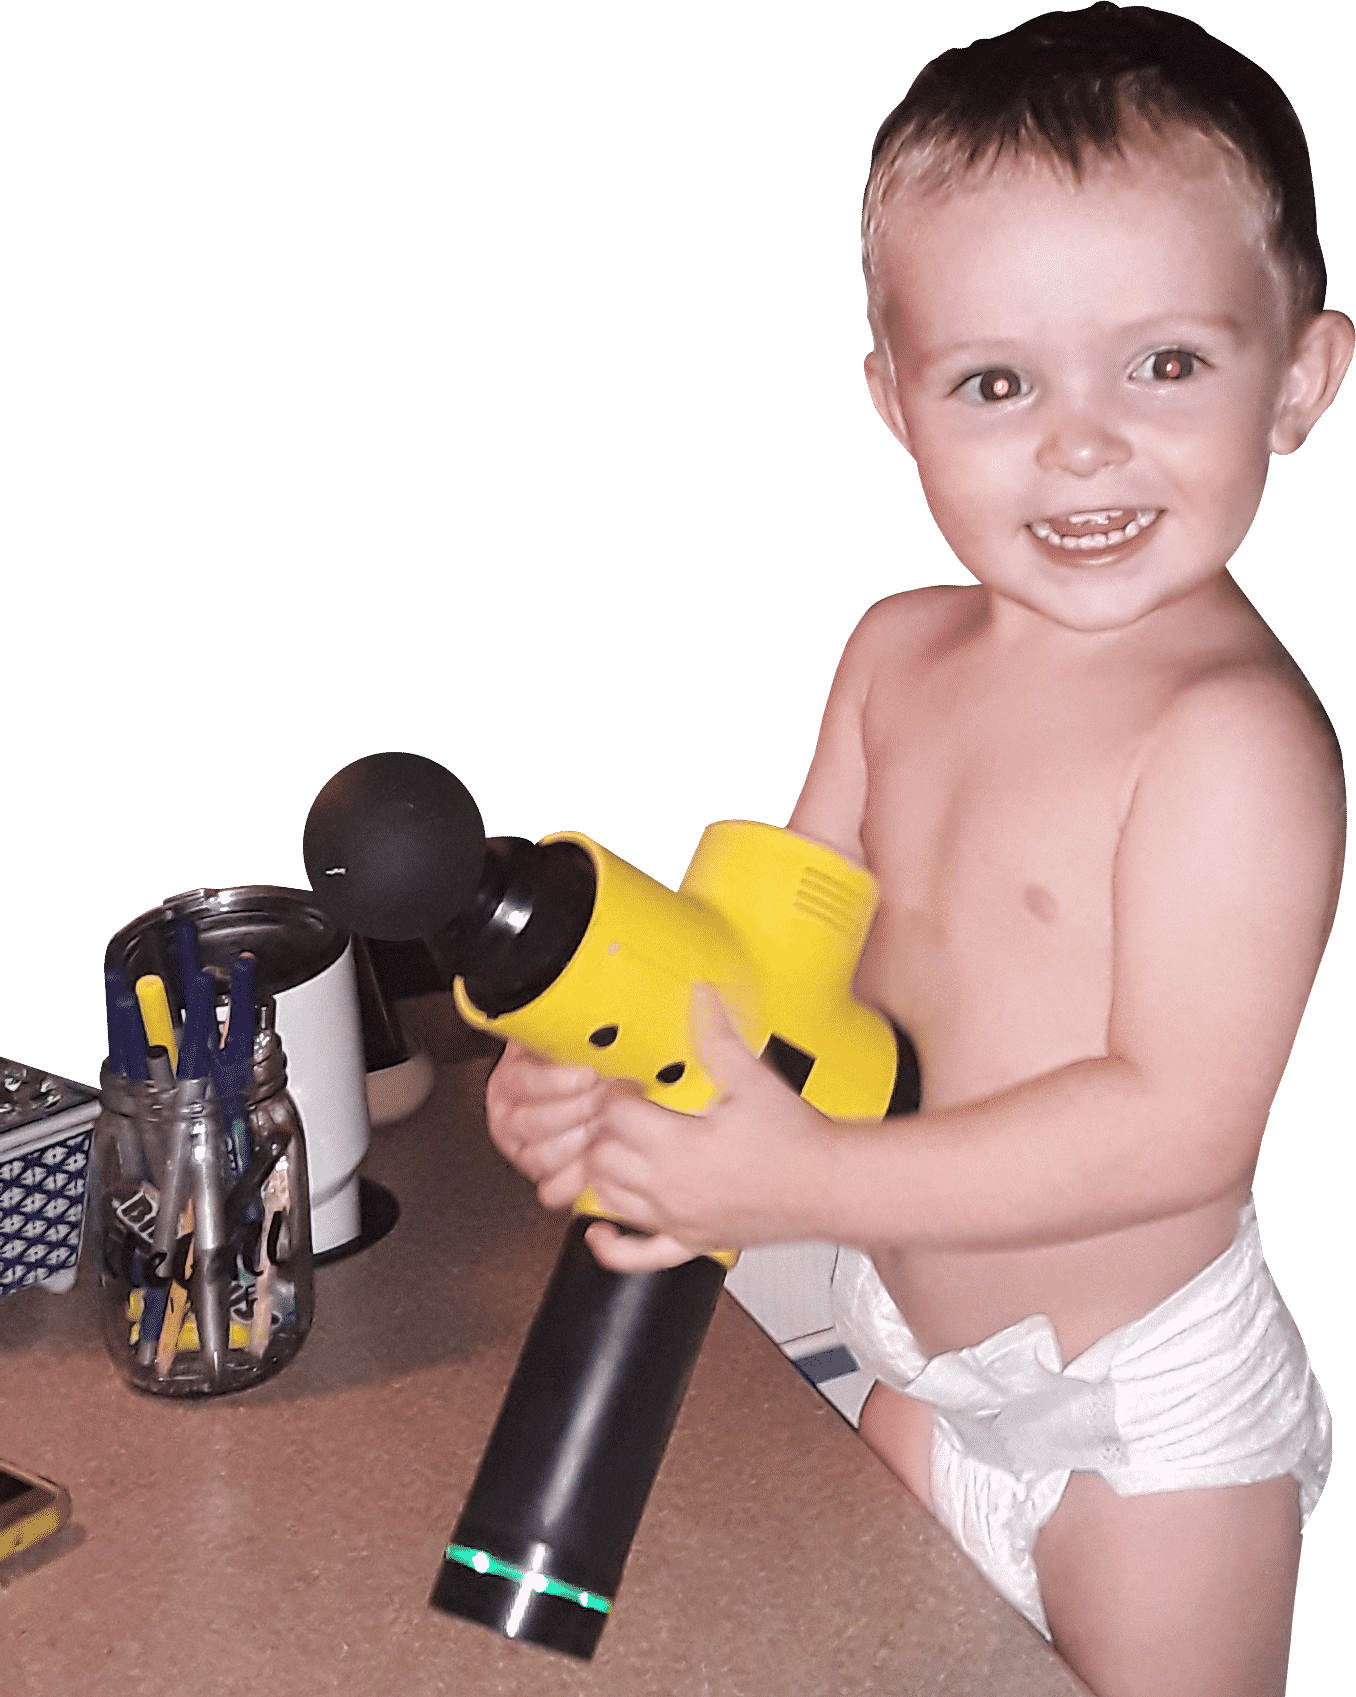 baby_with_jolt-02